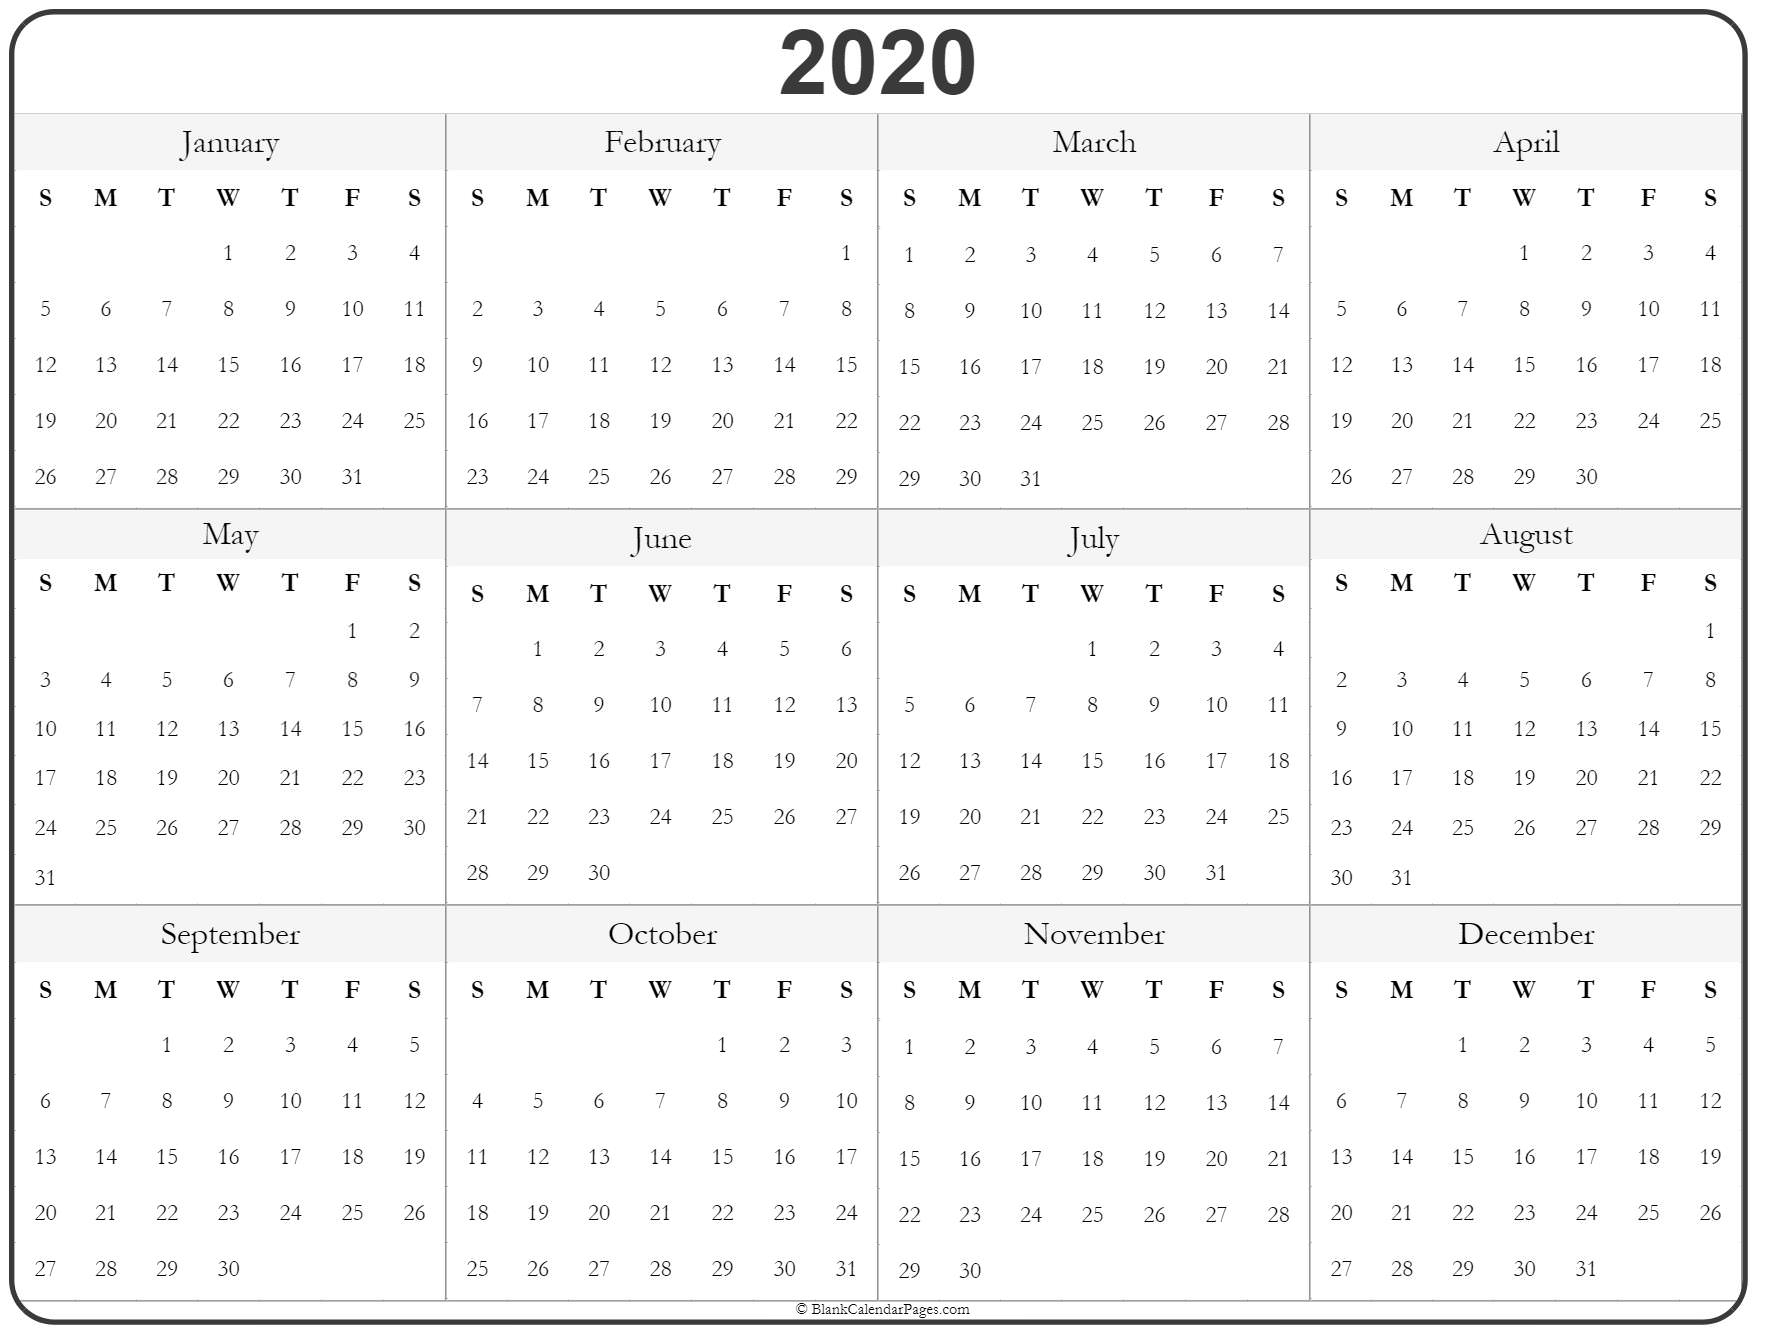 2020 Year Calendar | Yearly Printable-Printable 2020